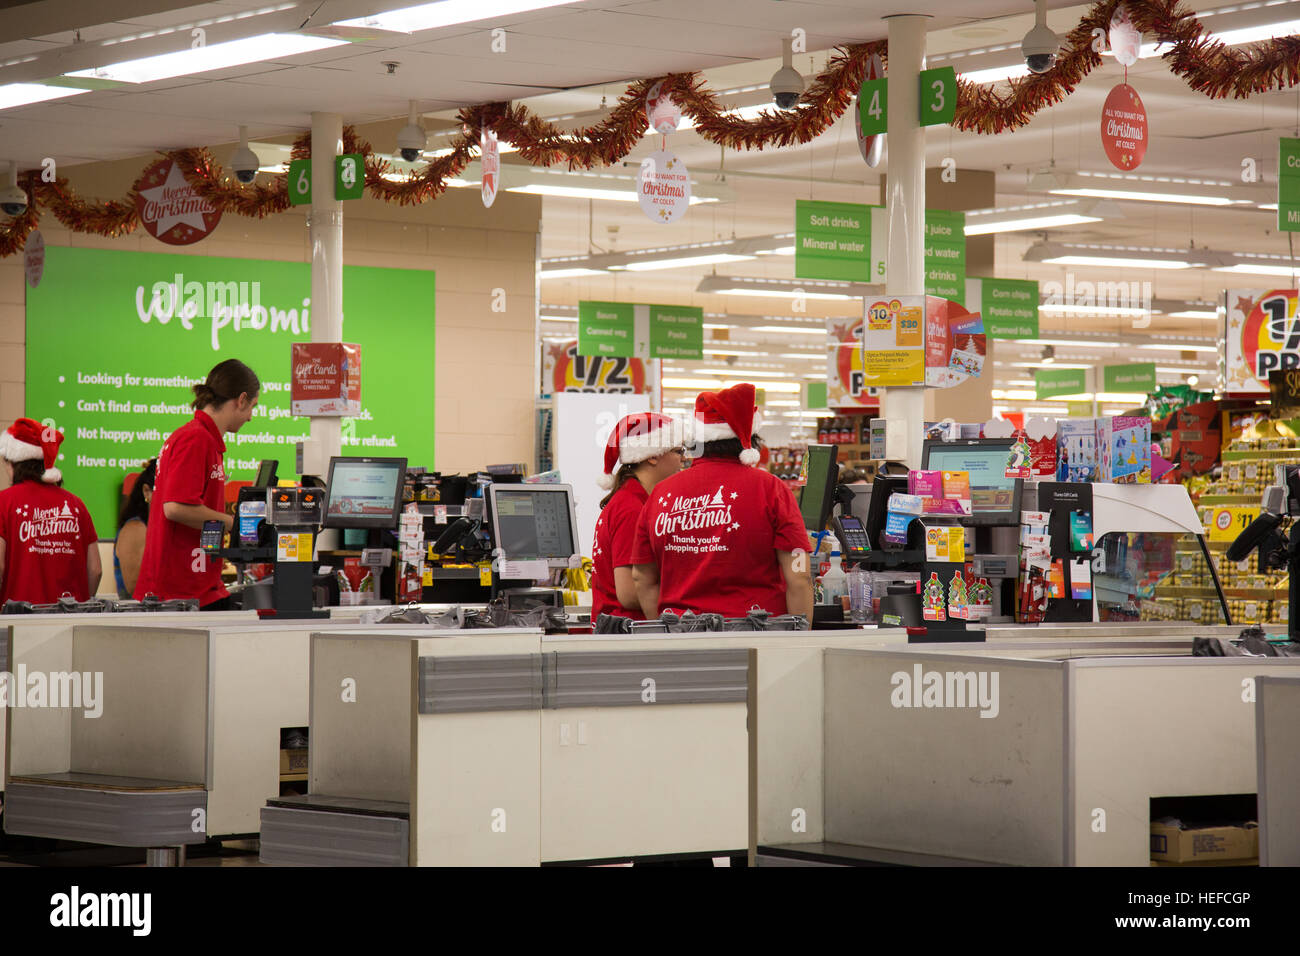 coles supermarket store in sydneyaustralia staff are wearing merry christmas clothes and hats - Coles Christmas Decorations